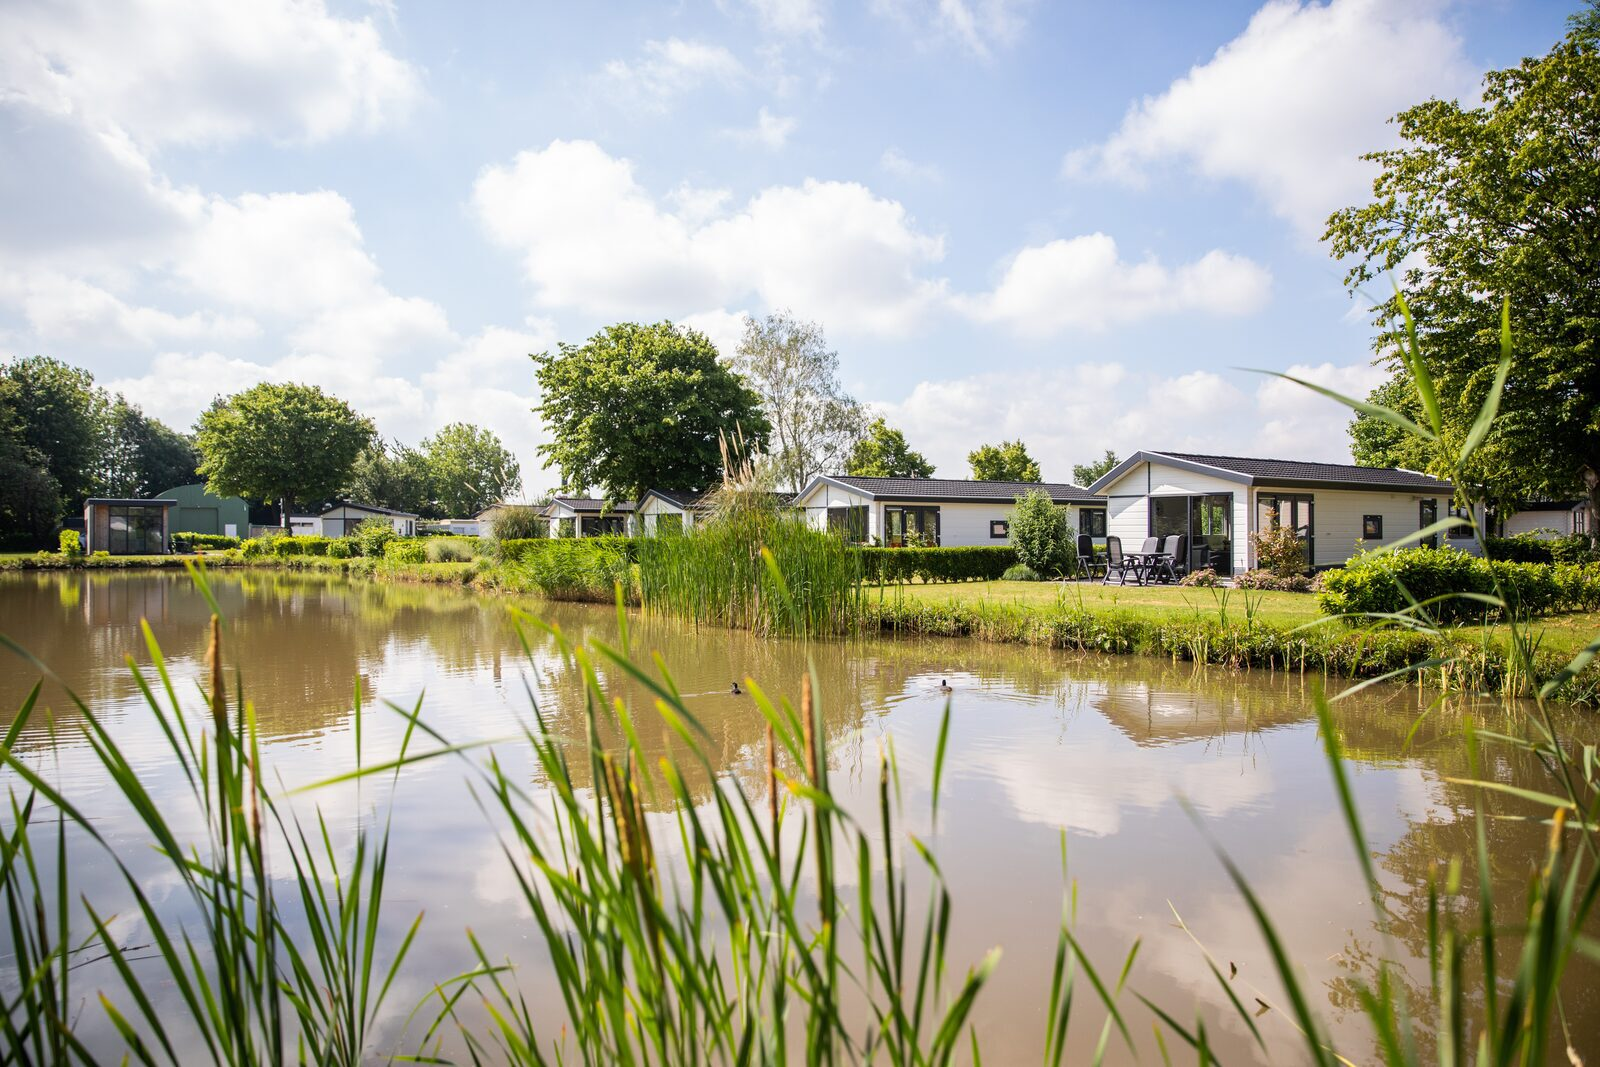 The benefits of purchasing a holiday home for rental purposes